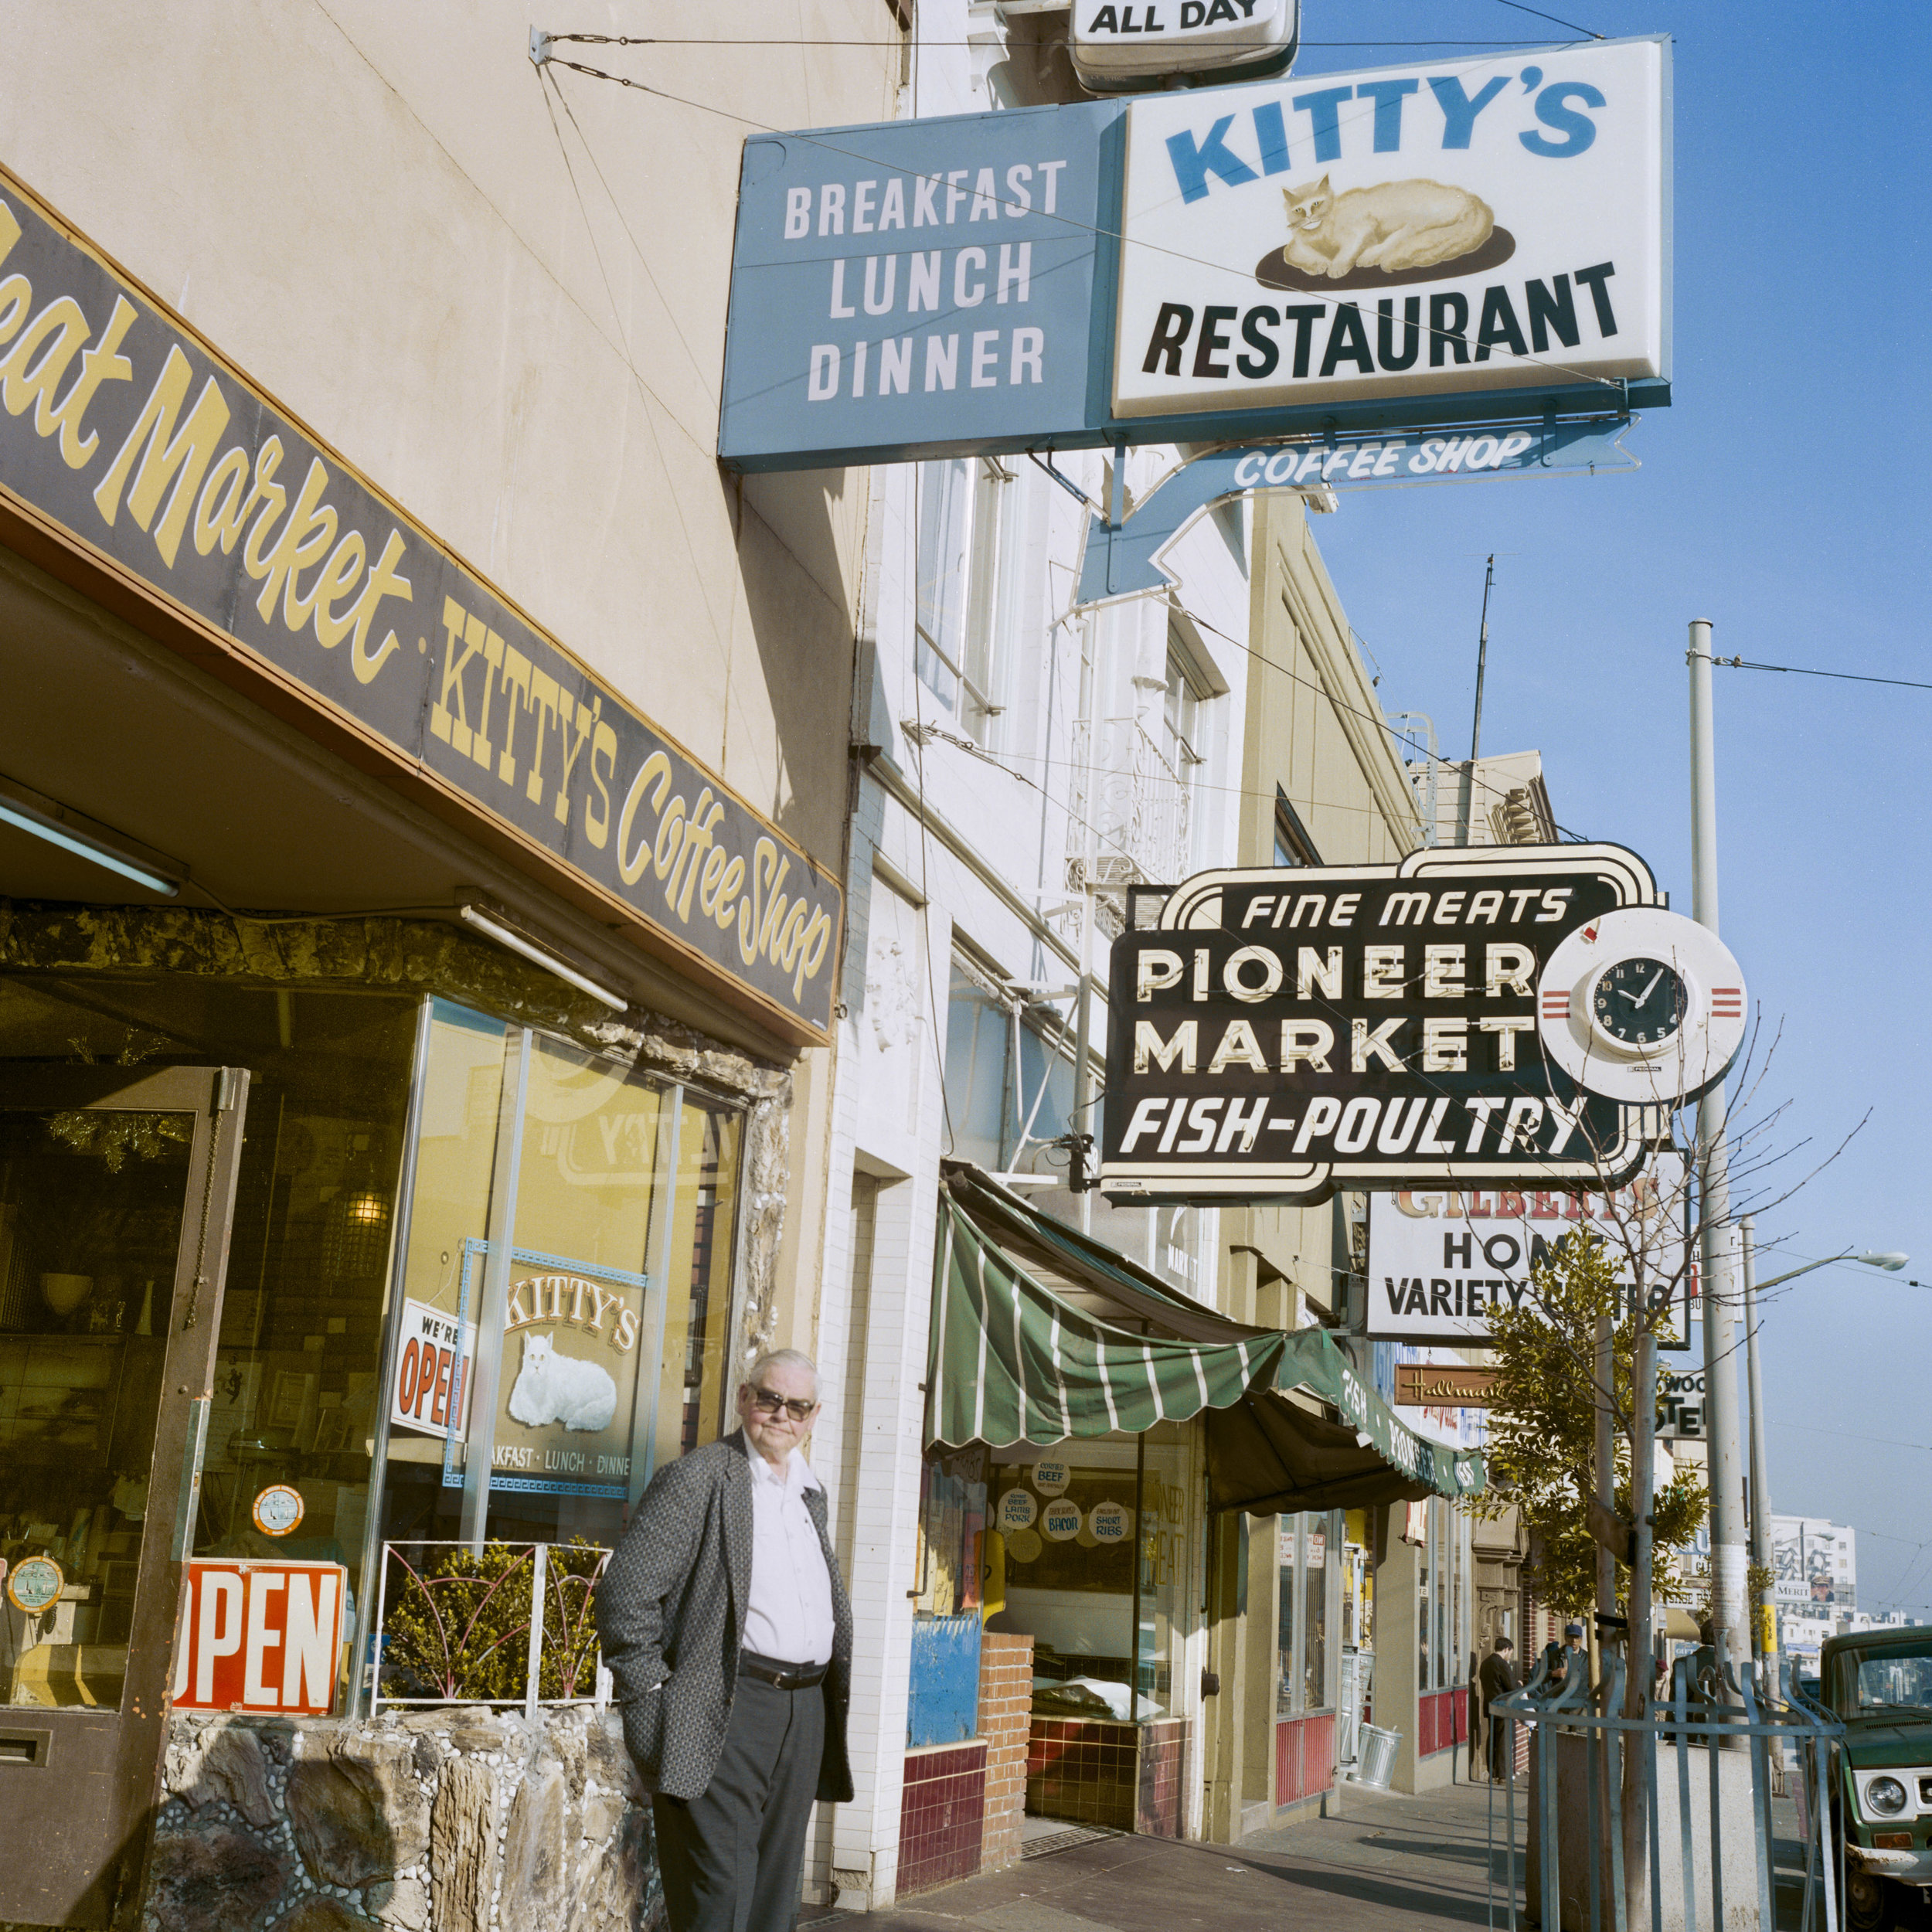 JANET DELANEY  Kitty's Coffee Shop, Mission Street, 1984  from  Public Matters  Archival Pigment Print, 2018  Available in 2 sizes 9 x 9 inches, edition of 7 + 2AP 15 x 15 inches, edition of 3 + 2AP